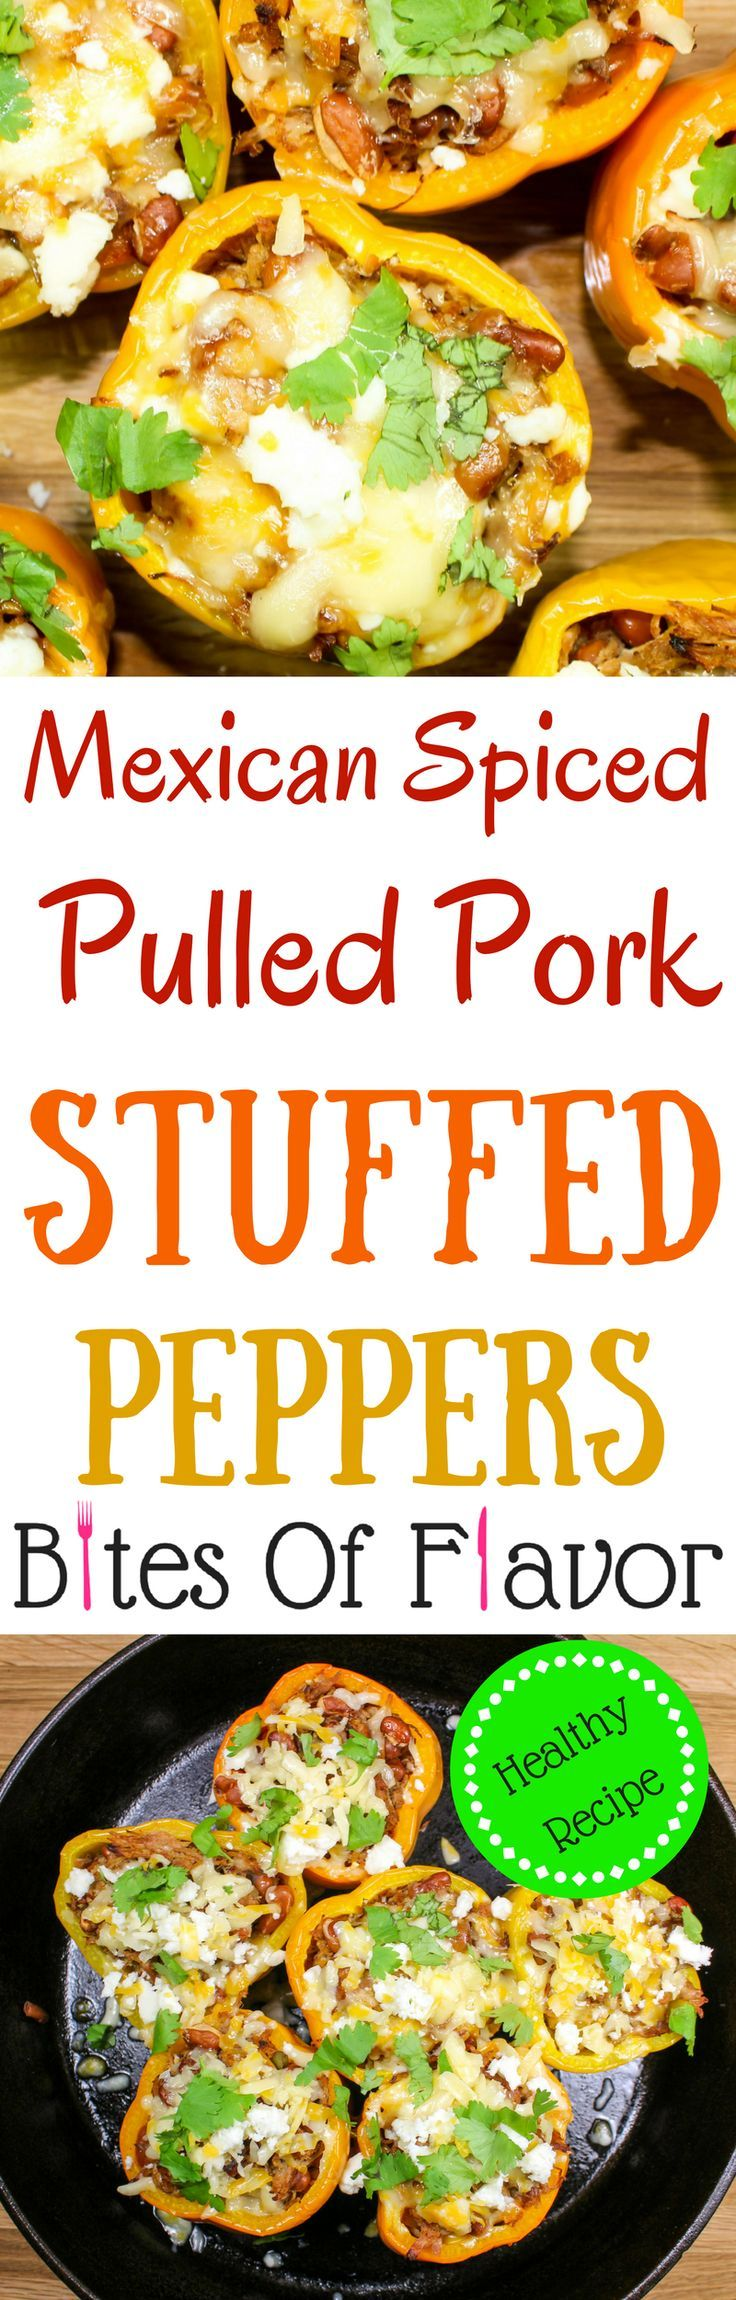 Mexican Spiced Pulled Pork Stuffed Peppers- Flavorful Mexican spiced pulled pork & beans stuffed in a pepper & topped with cheese… Delicious & perfect for a quick weeknight meal!  Weight Watcher friendly (8 SmartPoints).